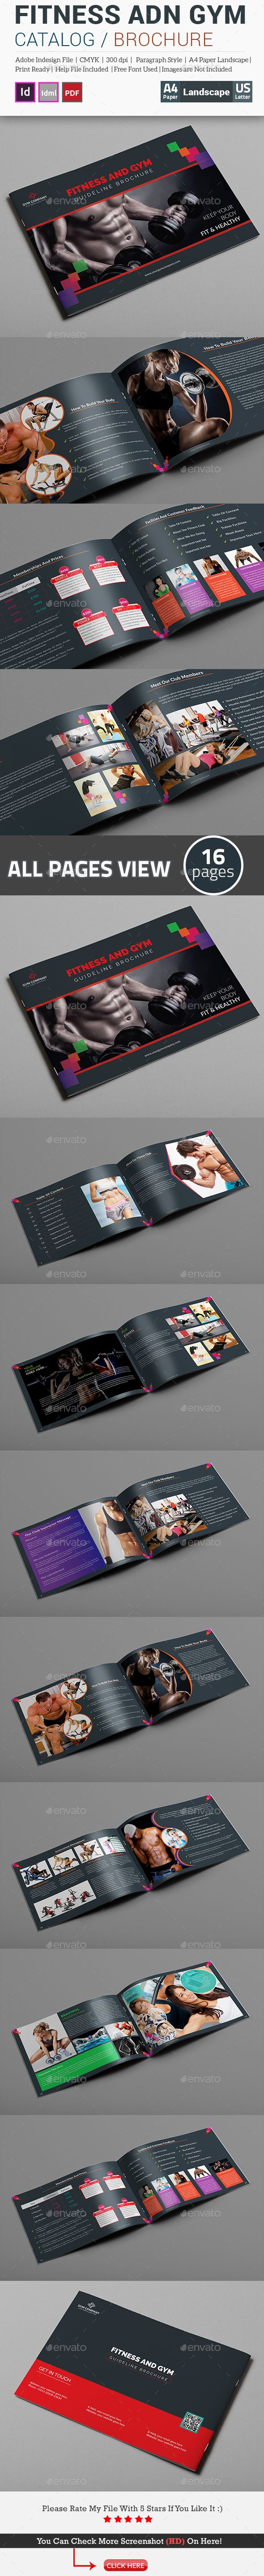 Fitness and Gym Guideline Brochure Template InDesign INDD. Download here: graphicriver.net/…